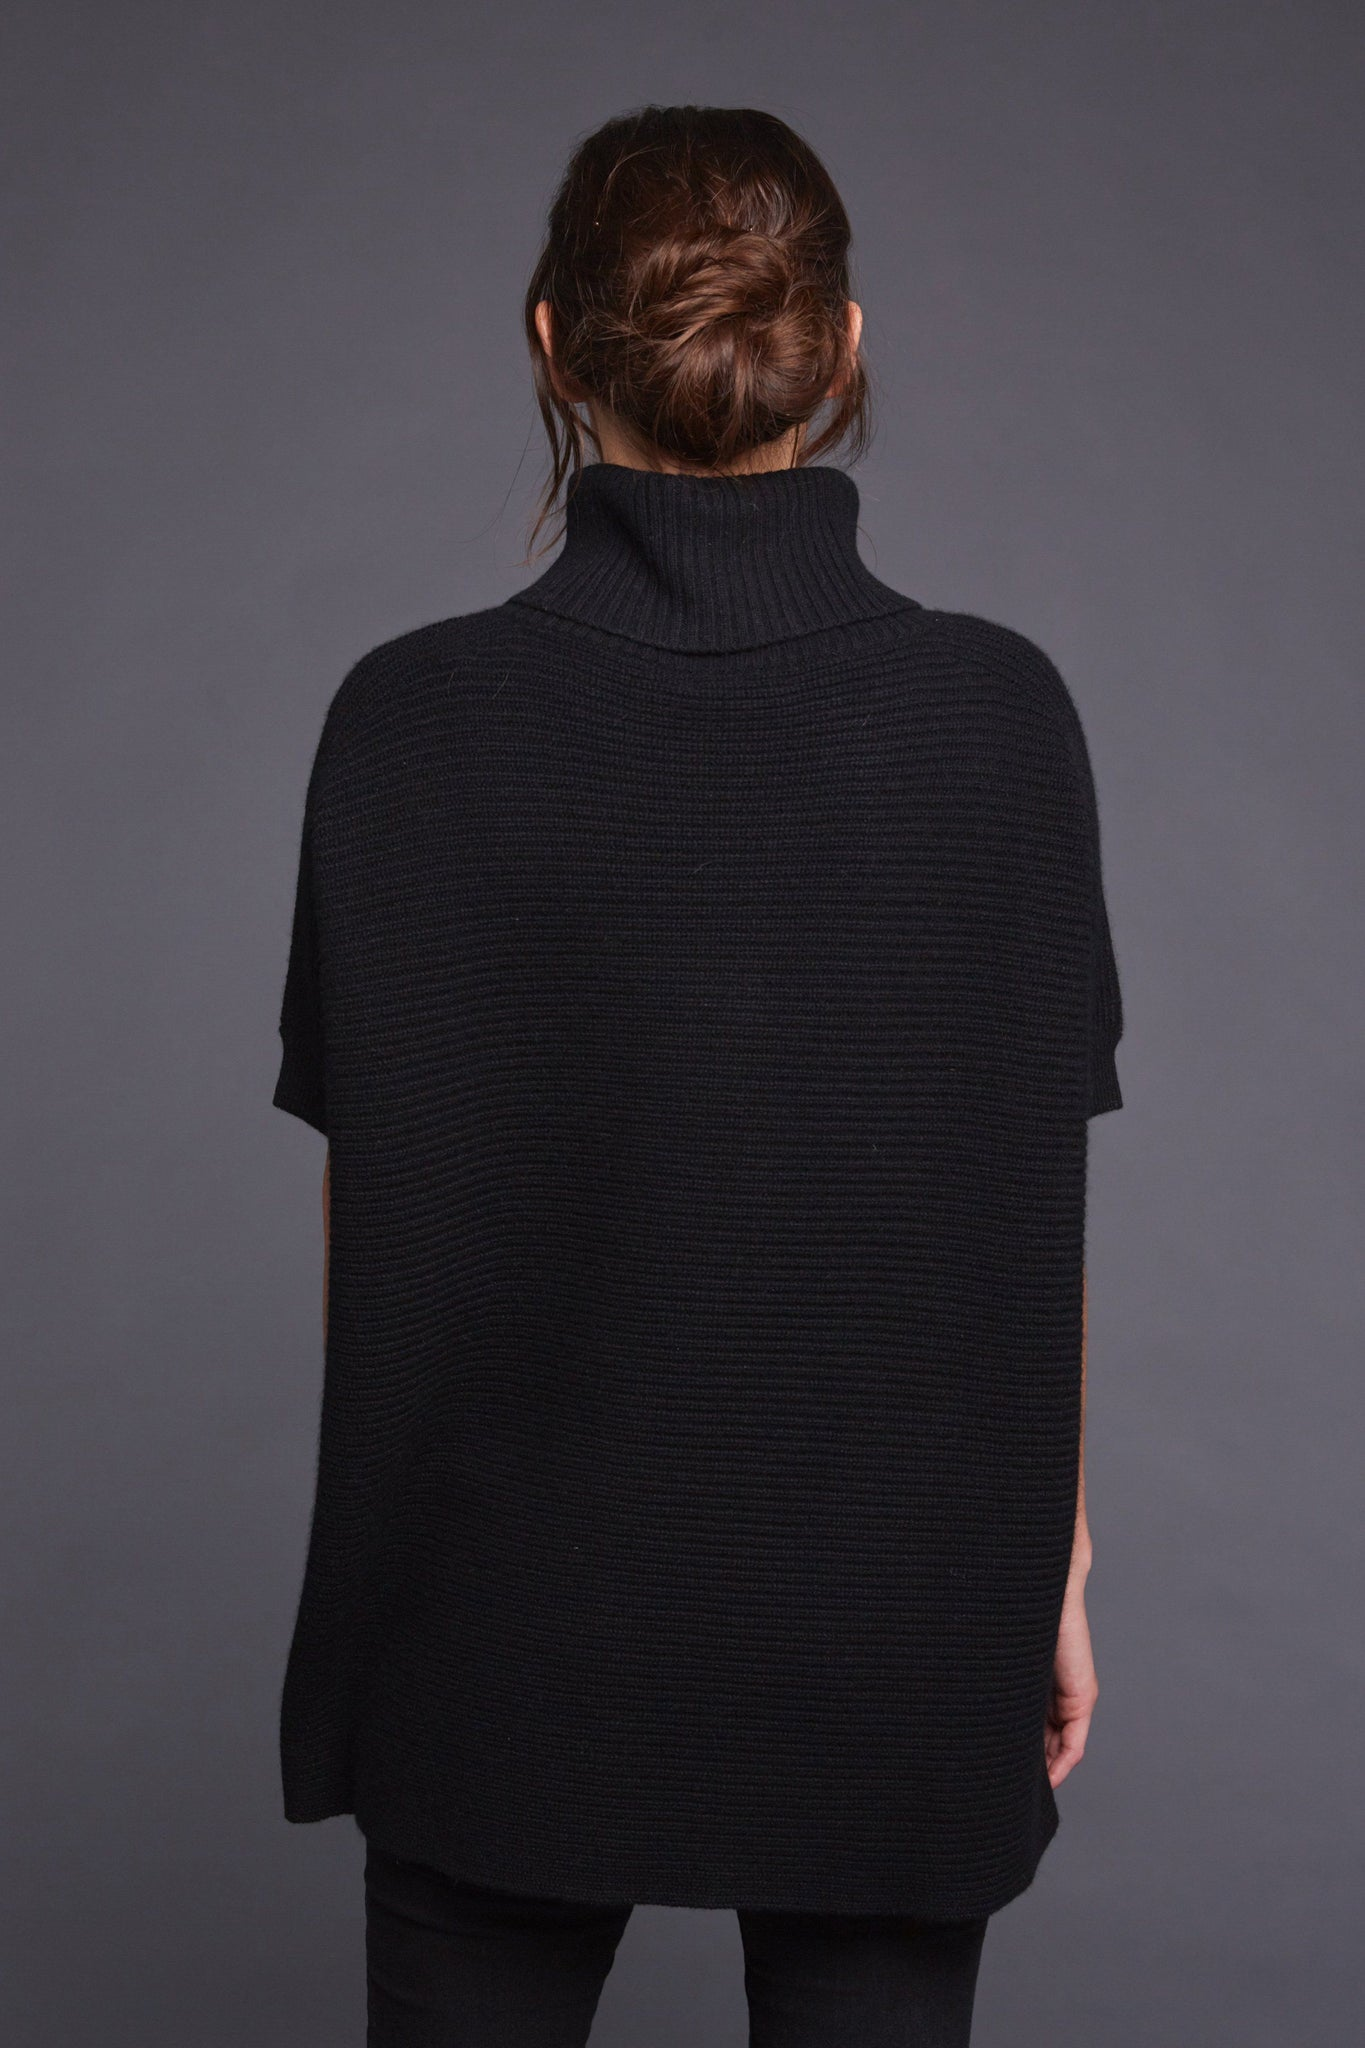 ... women s claire chunky knit oversized 100% pure organic cashmere  turtleneck sweater in black e7f9ec3d4